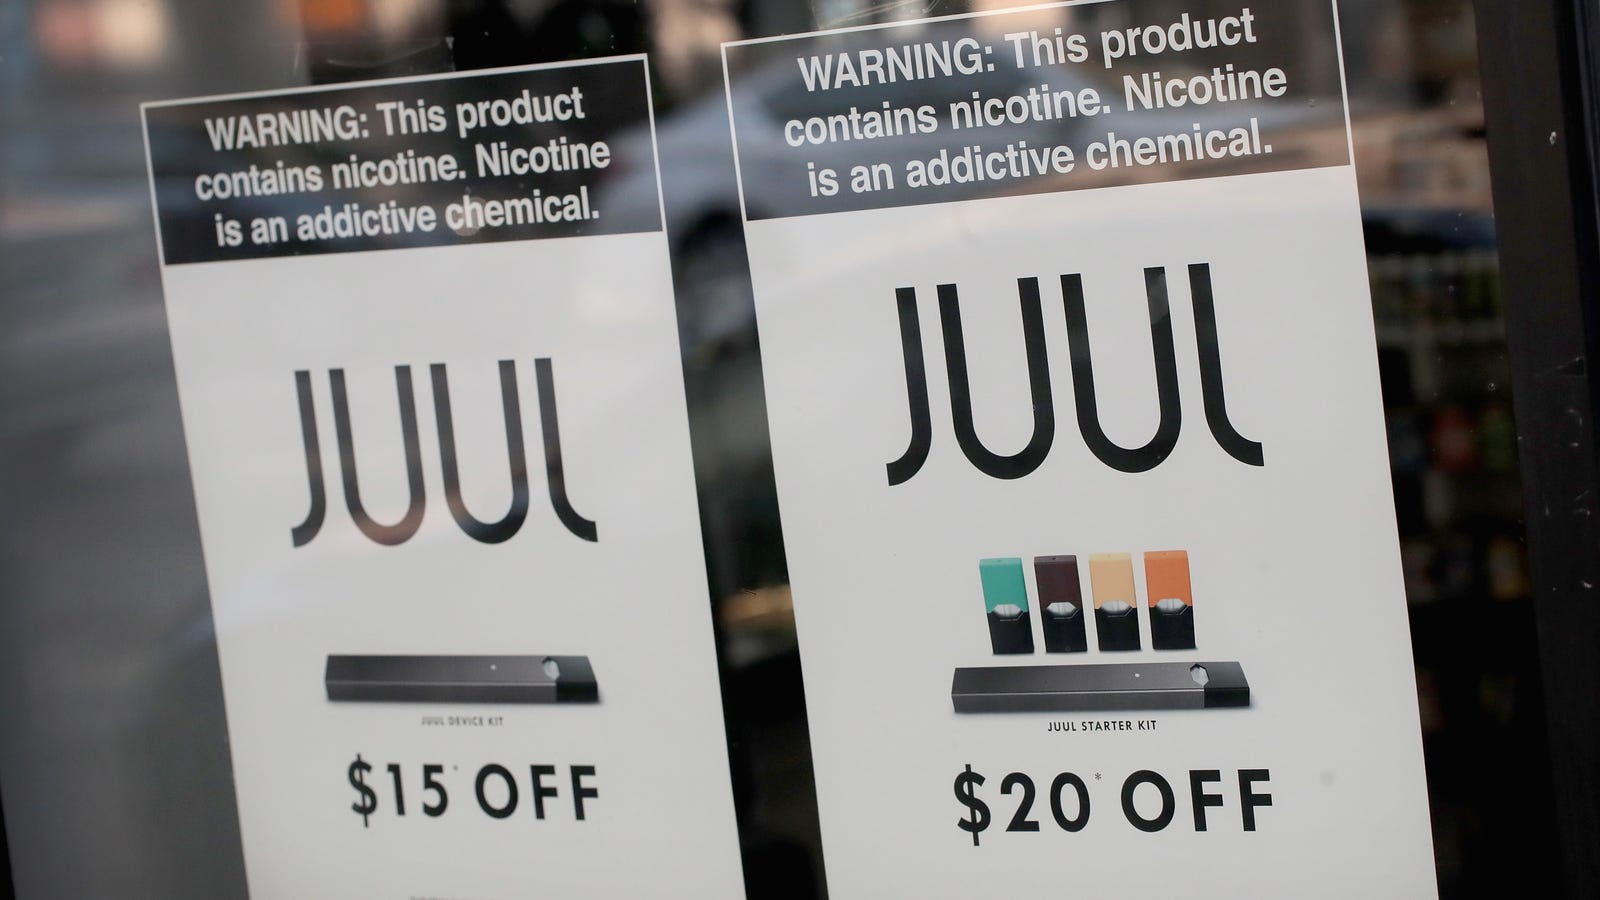 Juul Says It Will Stop Selling All Its Good Flavors of E